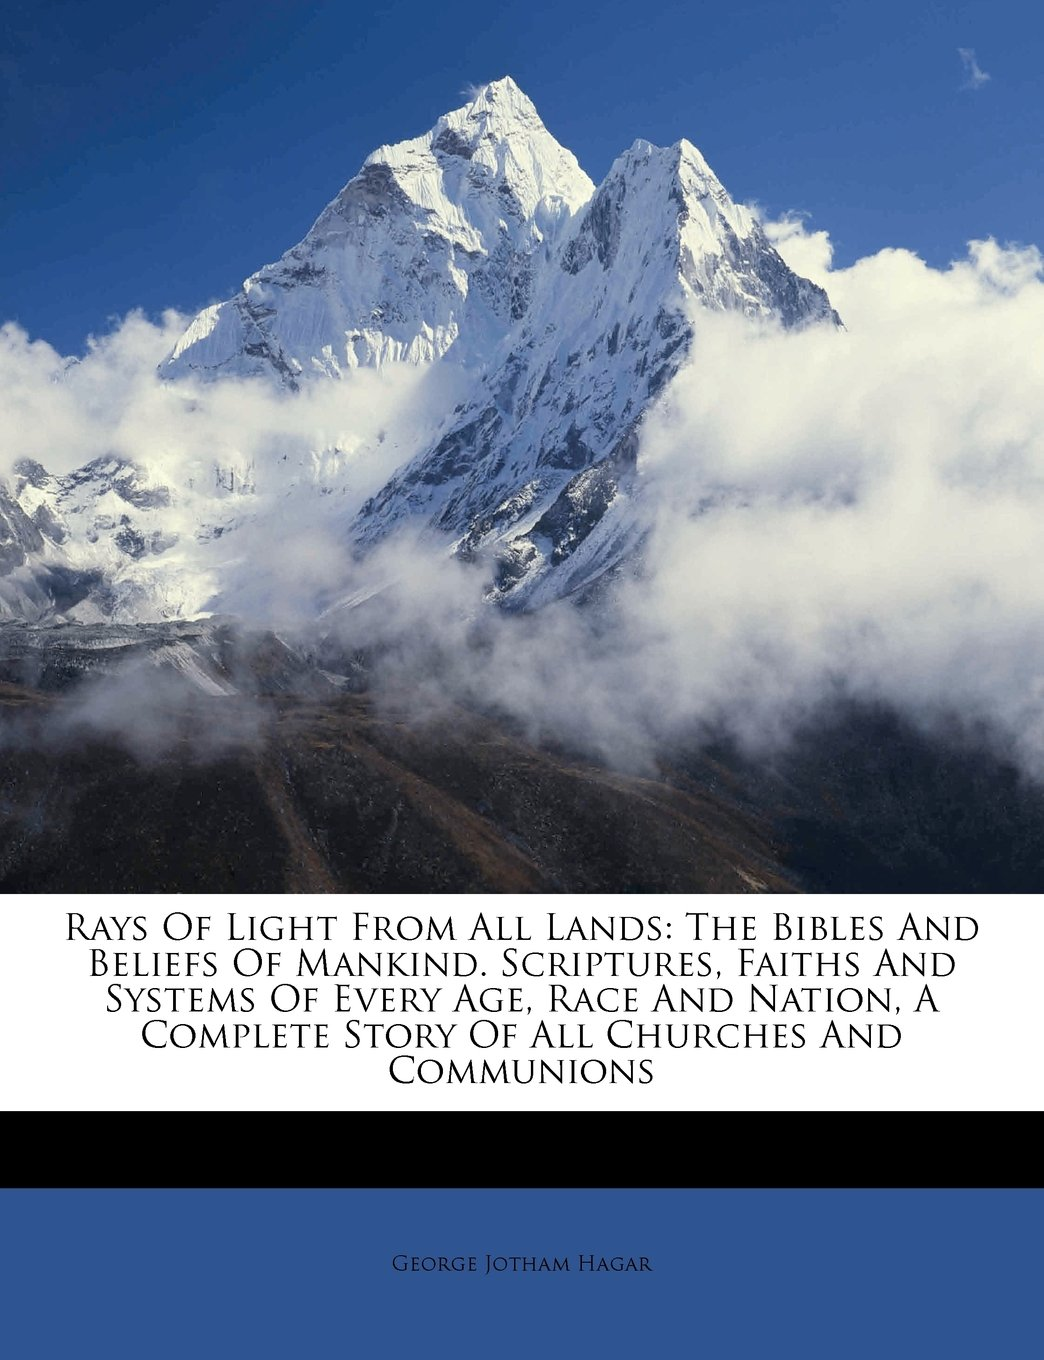 Download Rays Of Light From All Lands: The Bibles And Beliefs Of Mankind. Scriptures, Faiths And Systems Of Every Age, Race And Nation, A Complete Story Of All Churches And Communions PDF